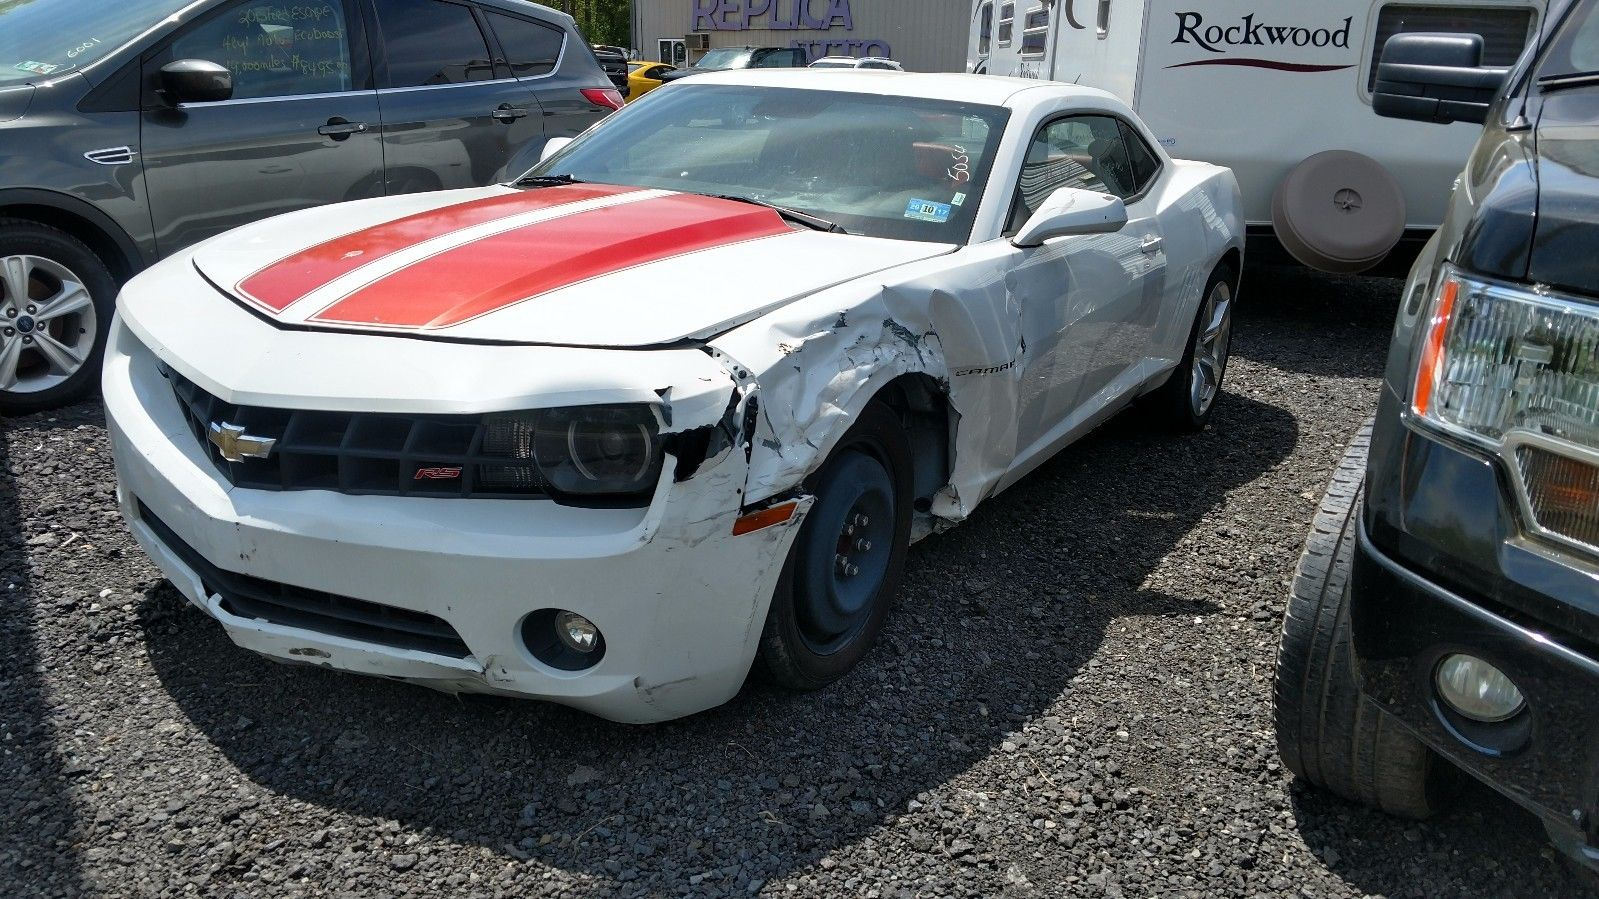 Wrecked Cars For Sale >> Left side damage 2010 Chevrolet Camaro LT Coupe repairable ...